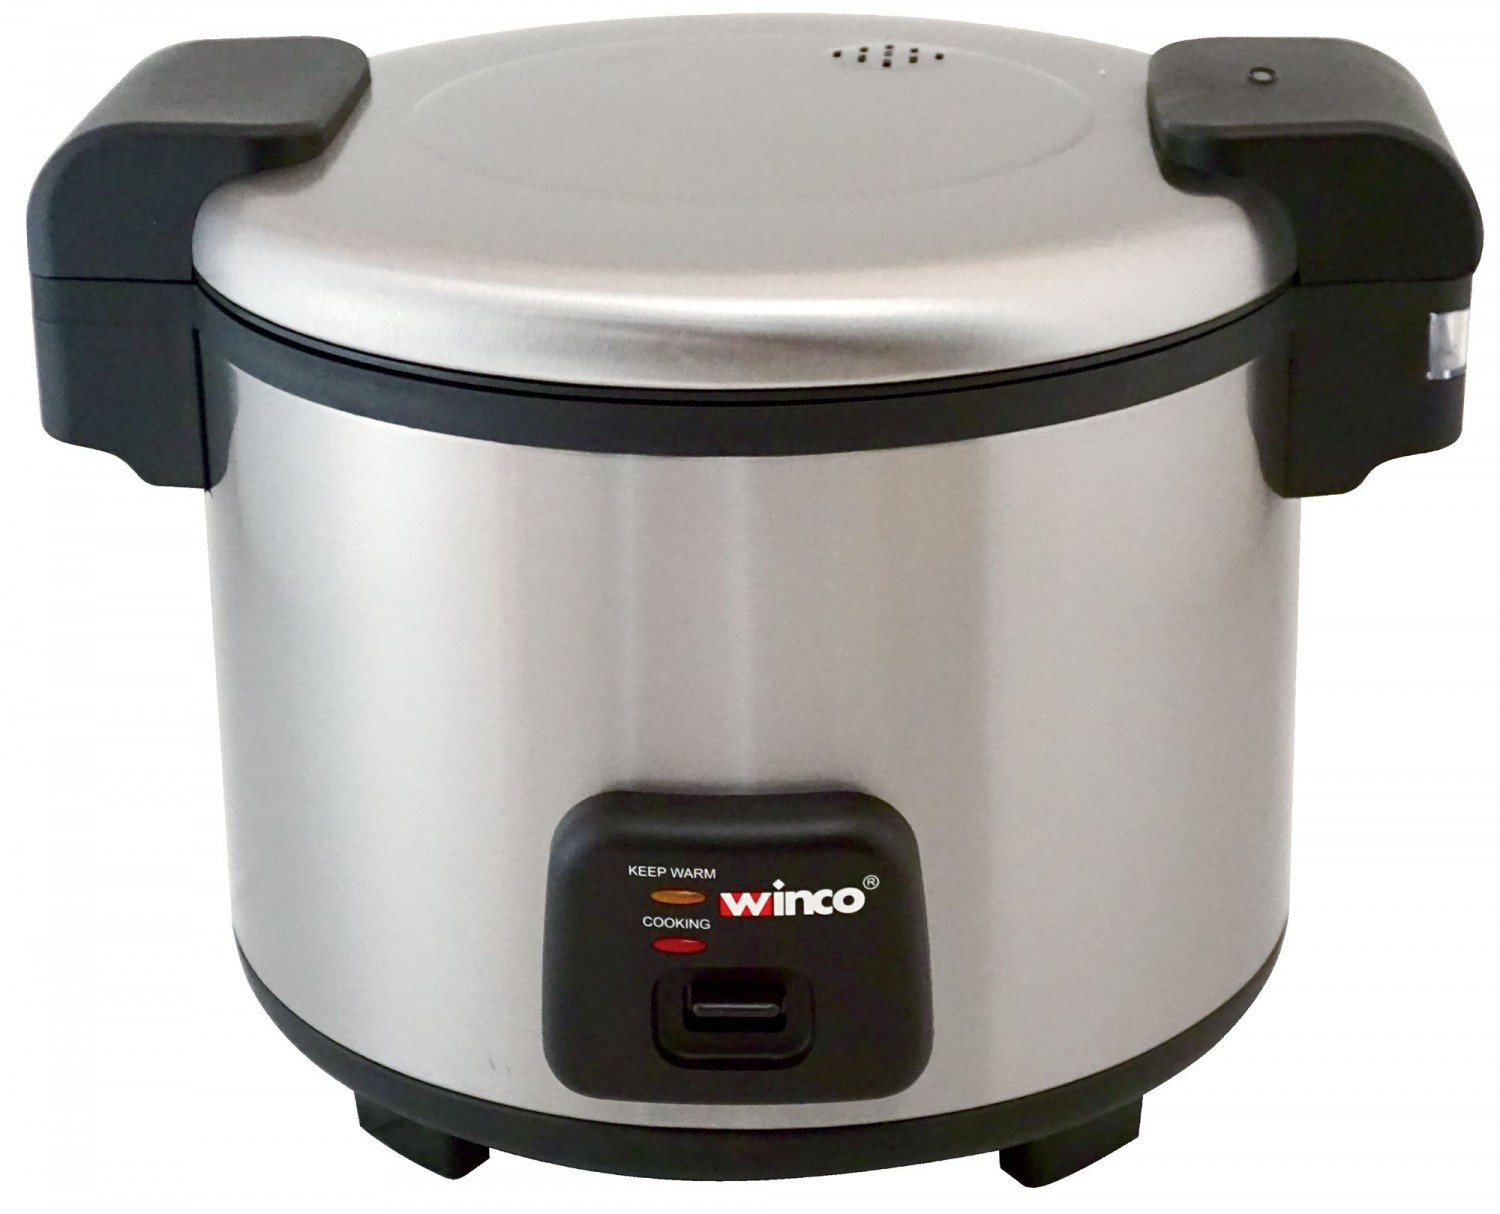 Winco RC-S300 Advanced Electric Rice Cooker / Warmer